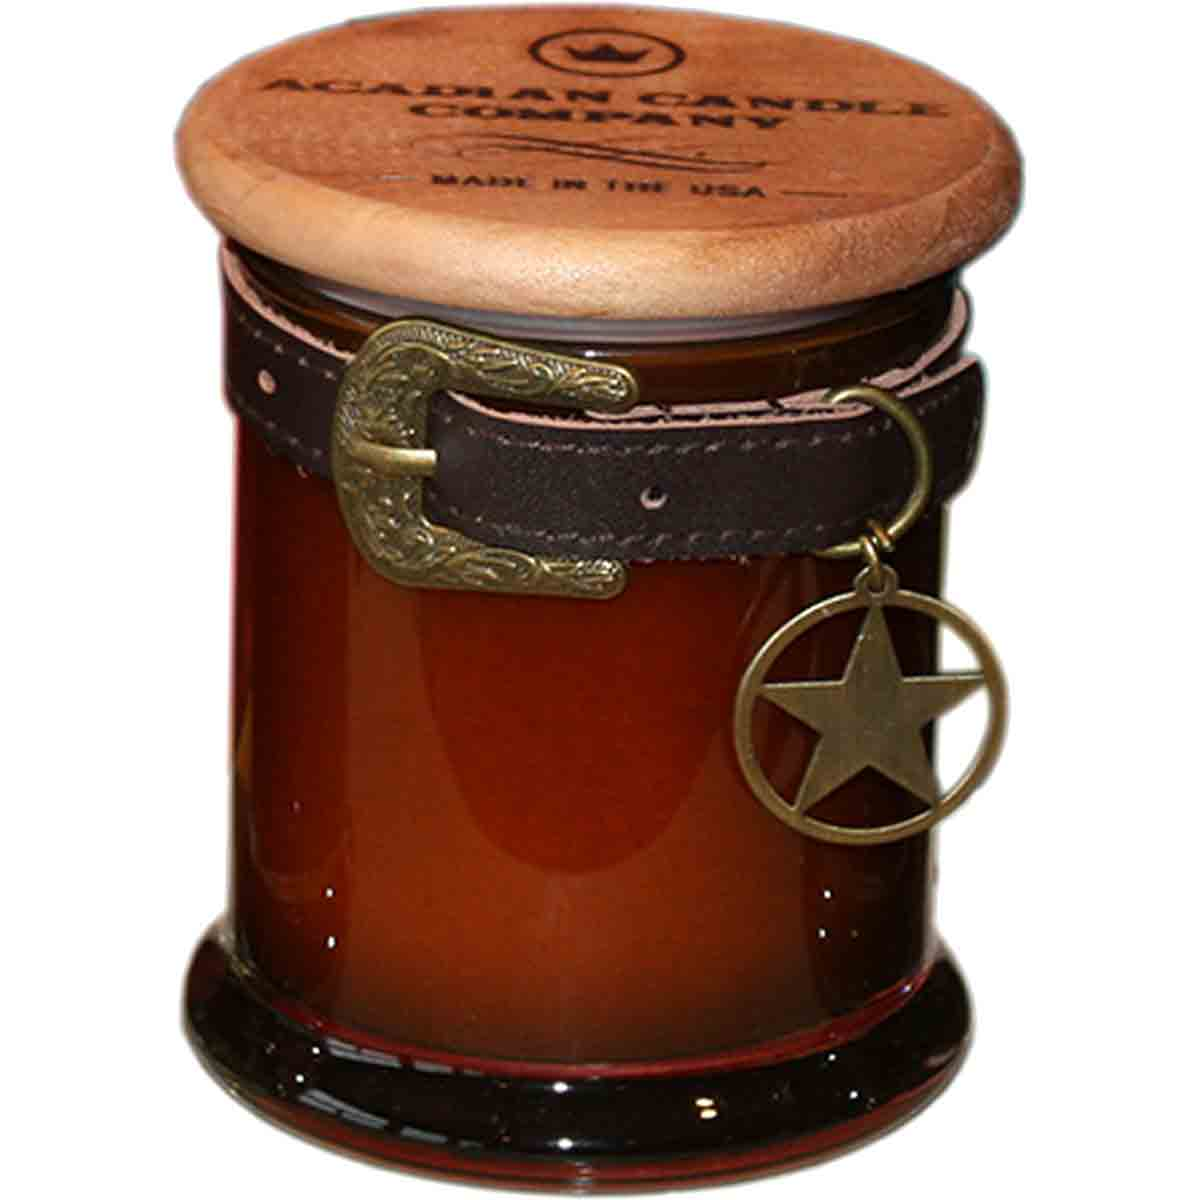 Lone Star Belt Candle - Black Pepper Scent